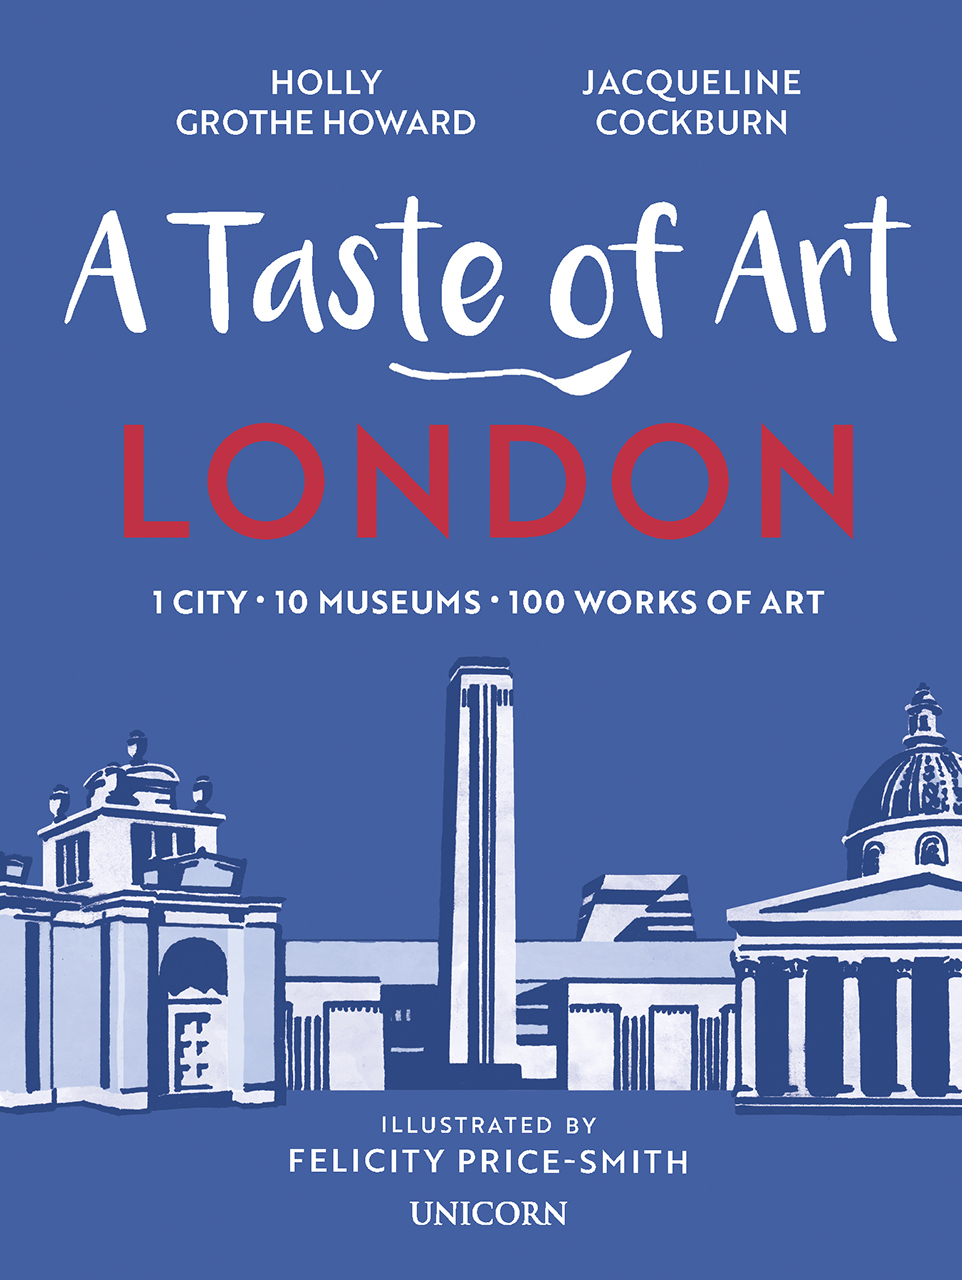 A Taste of Art London: 1 City, 10 Museums, 100 Works of Art